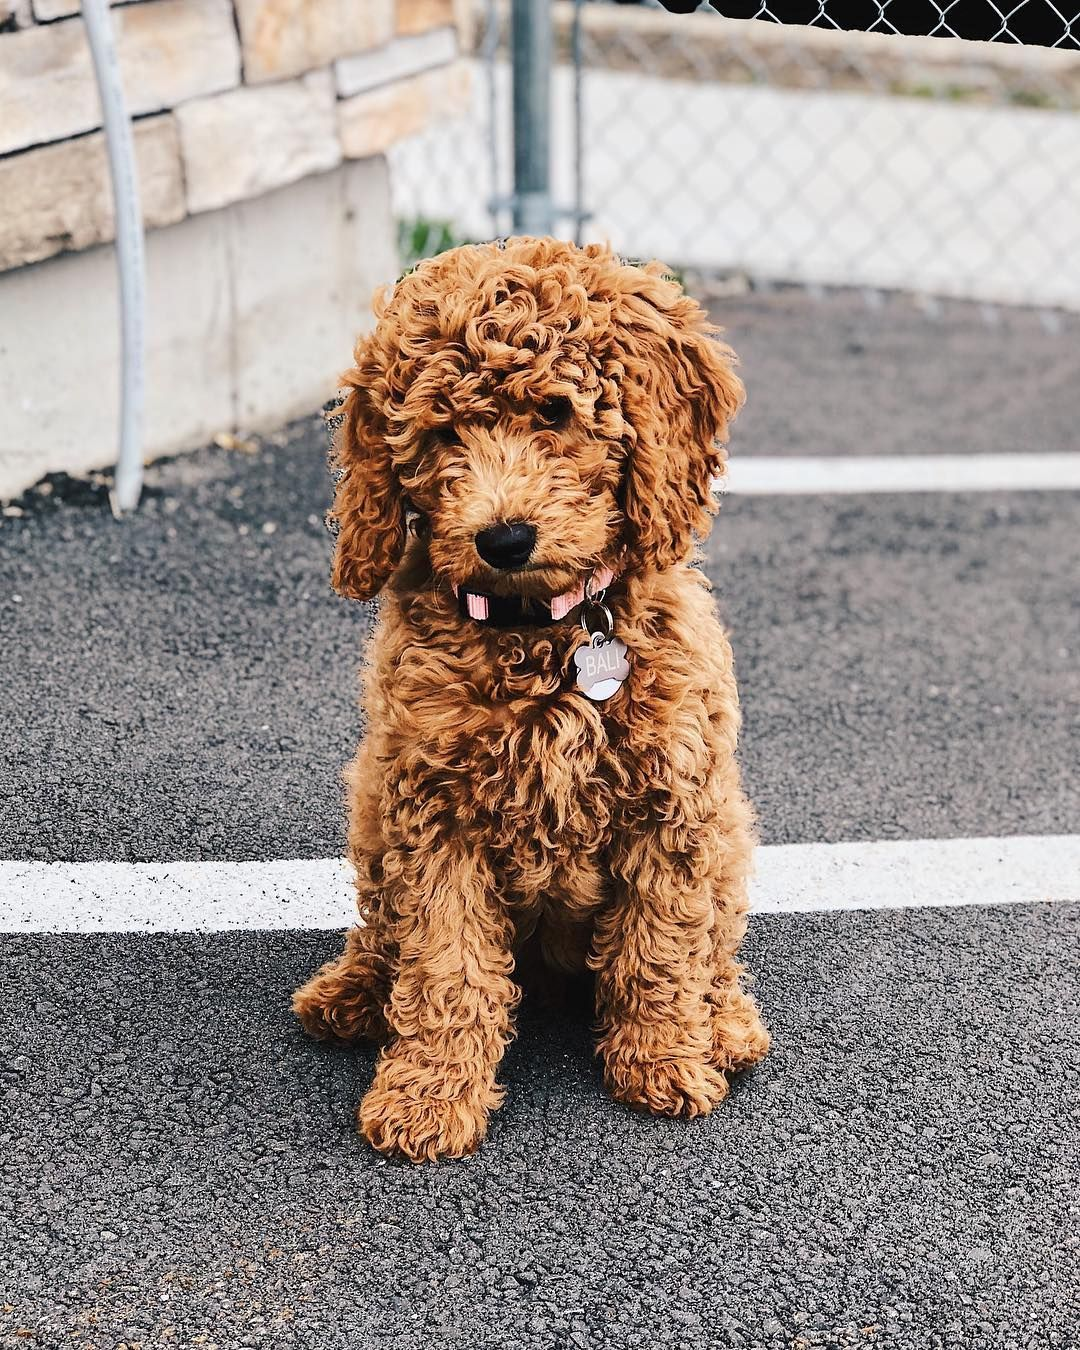 8 Things To Know About The Miniature Goldendoodle